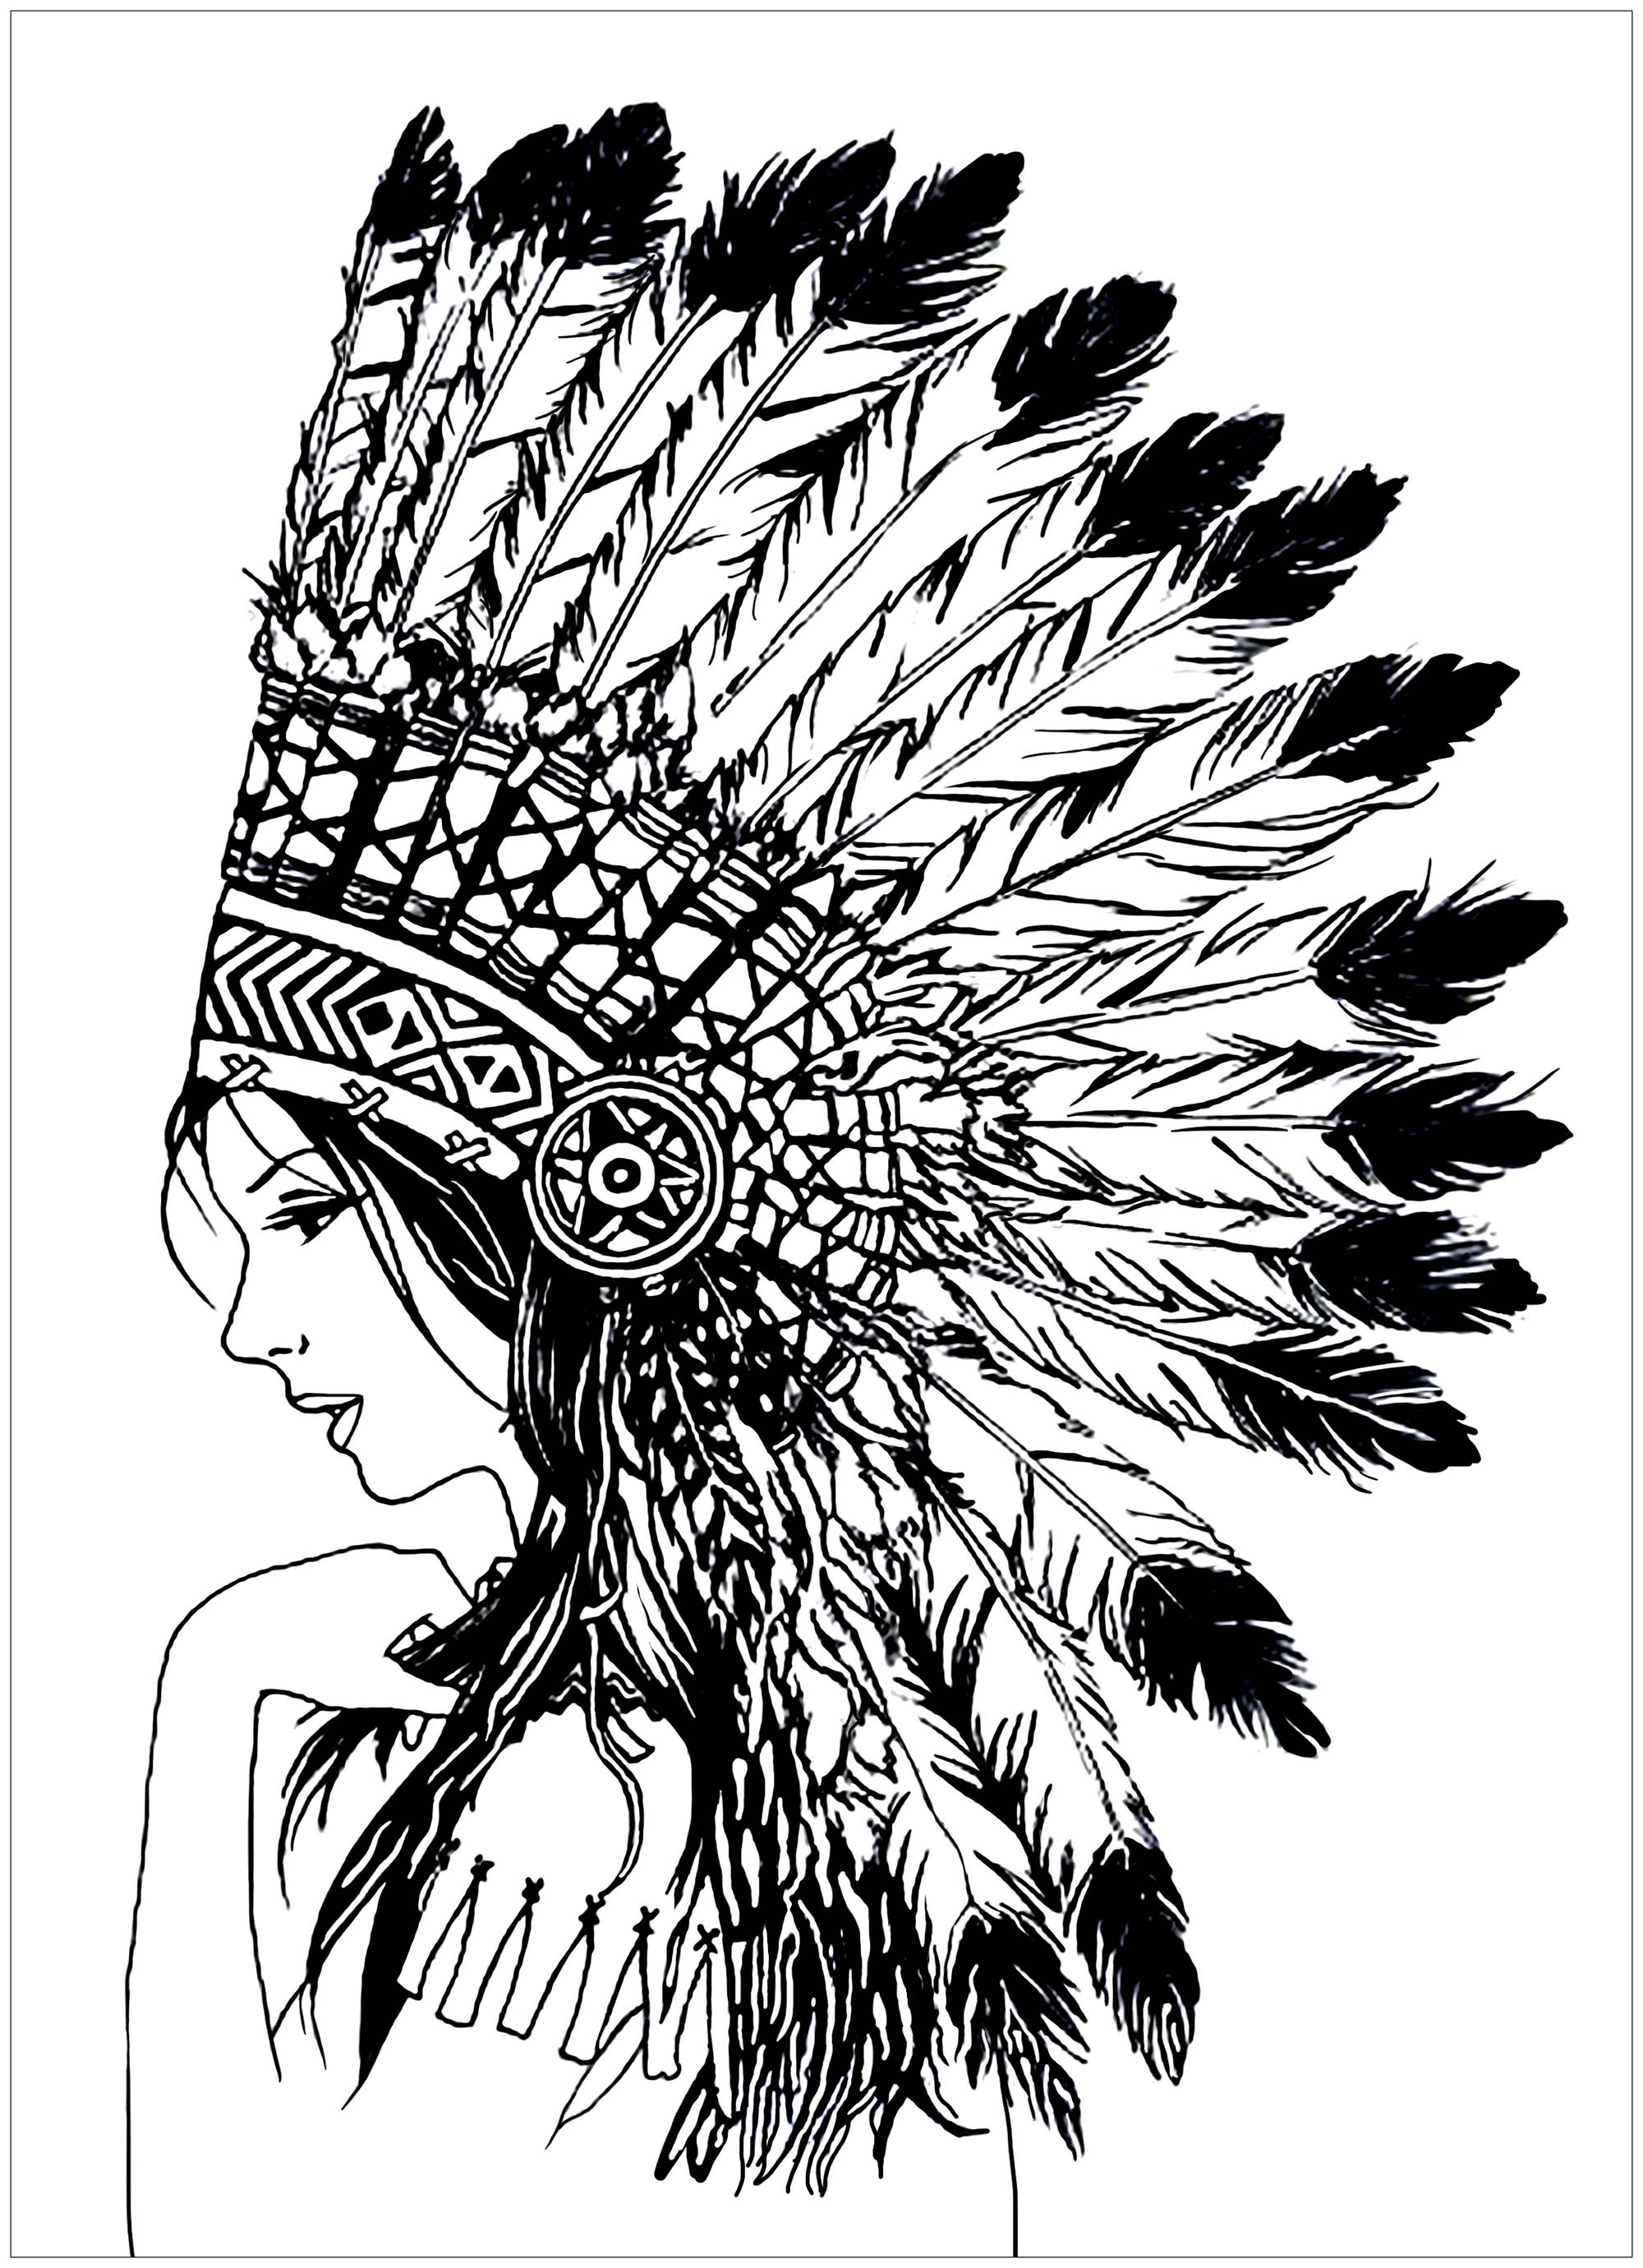 Beautiful Indian woman (Native American), with headdress with giant feathers